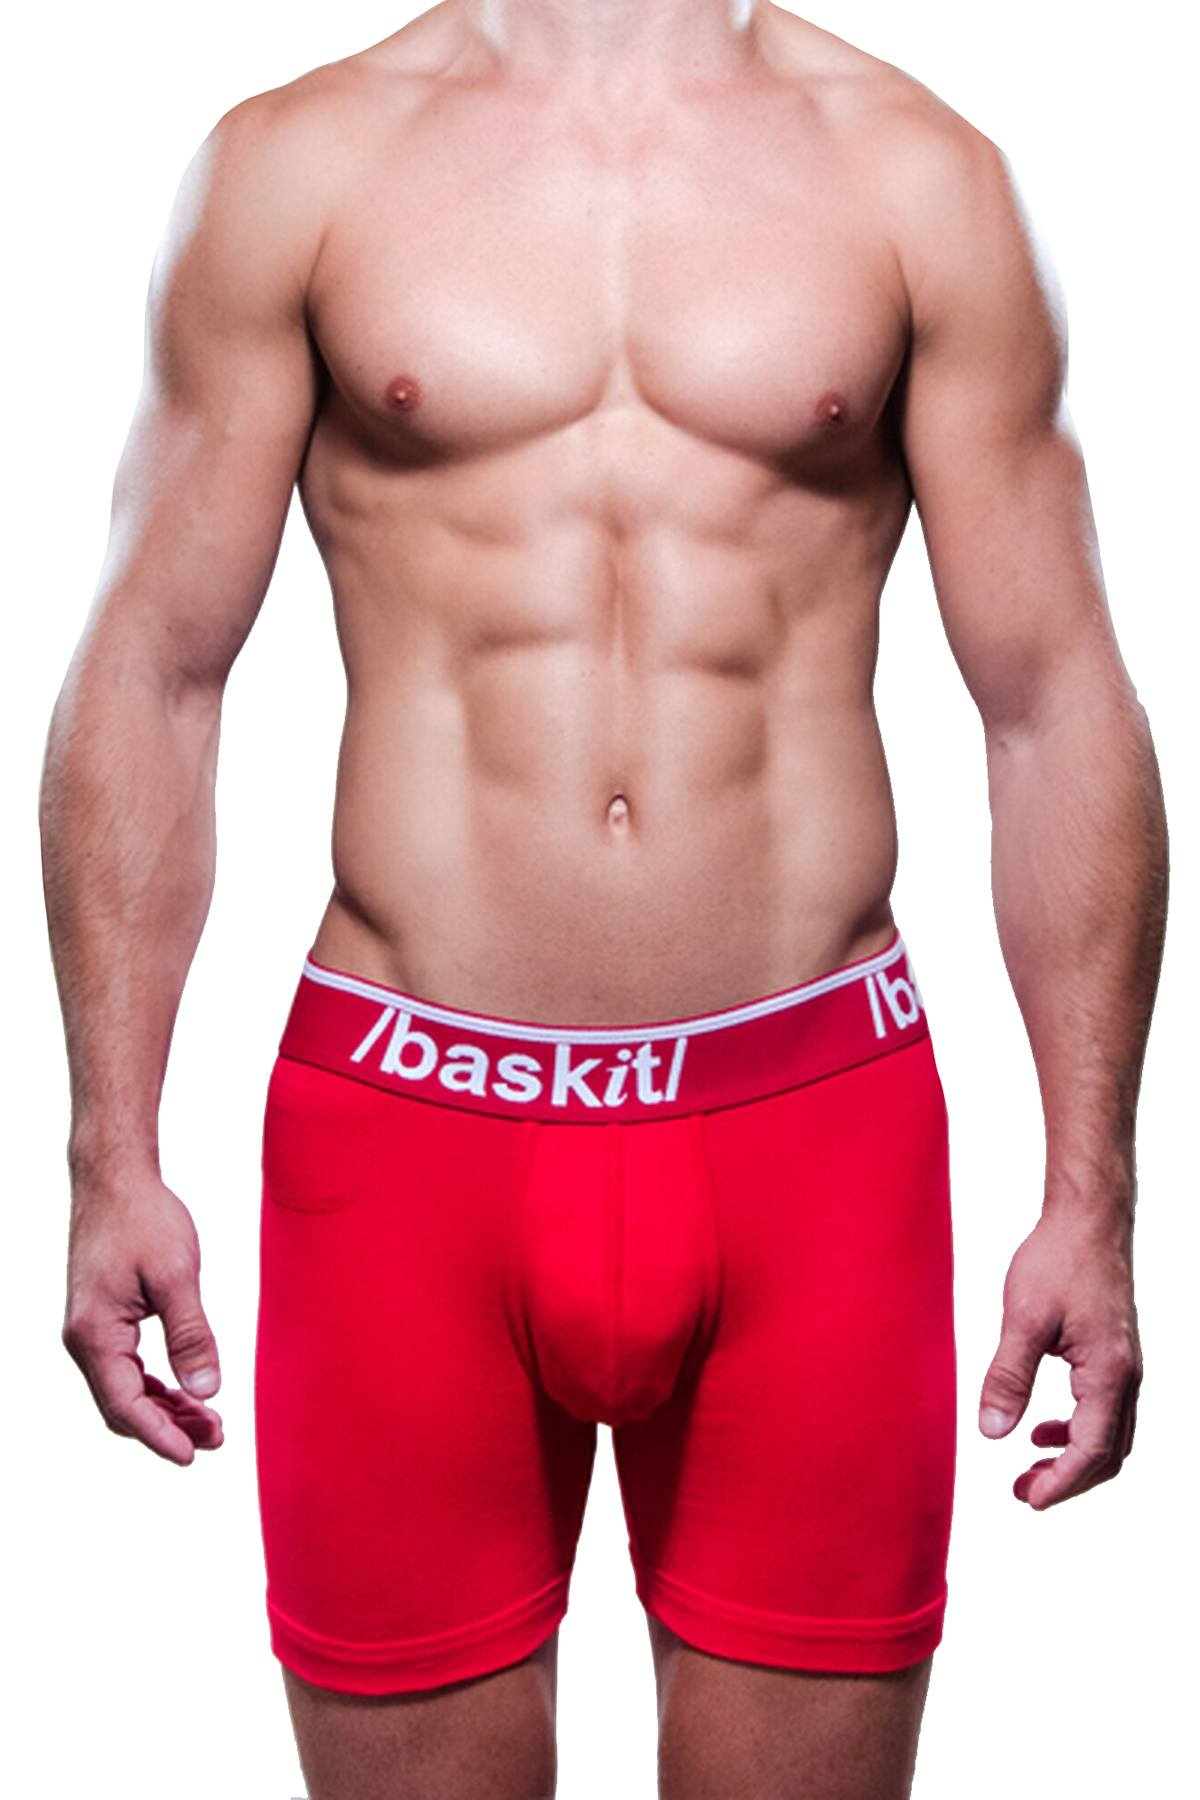 Baskit Red Billy Boy Boxer Brief